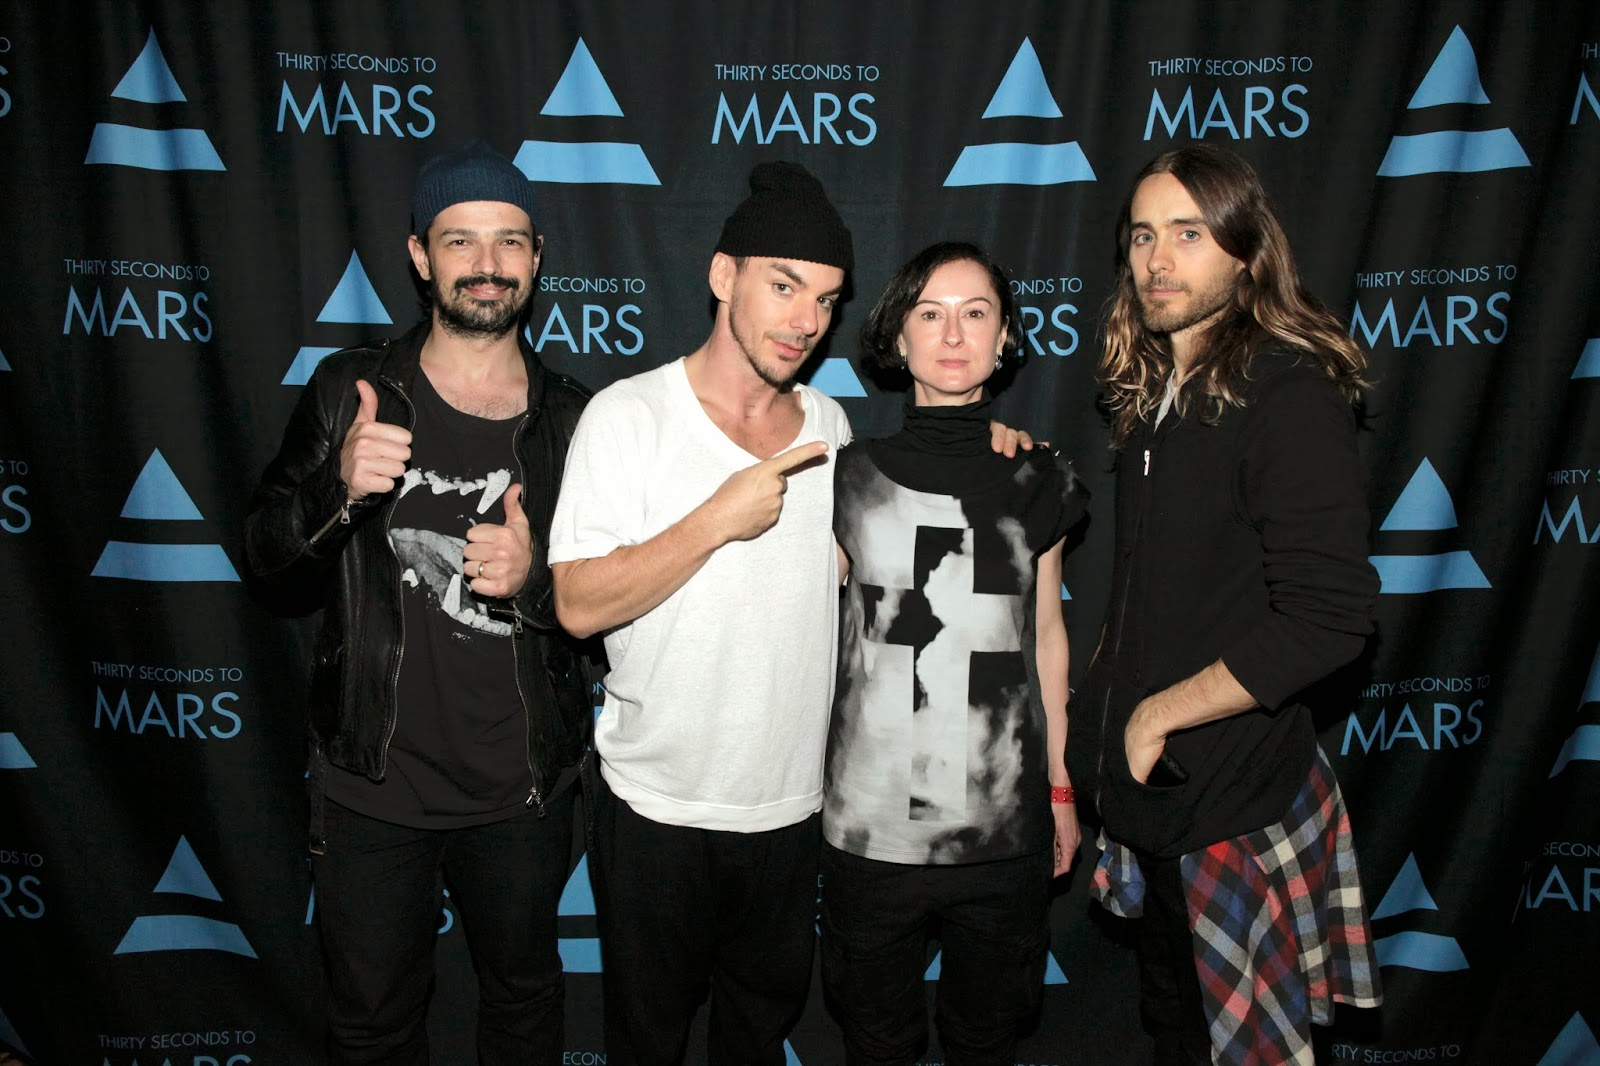 meet and greet 30 seconds to mars mexico 2014